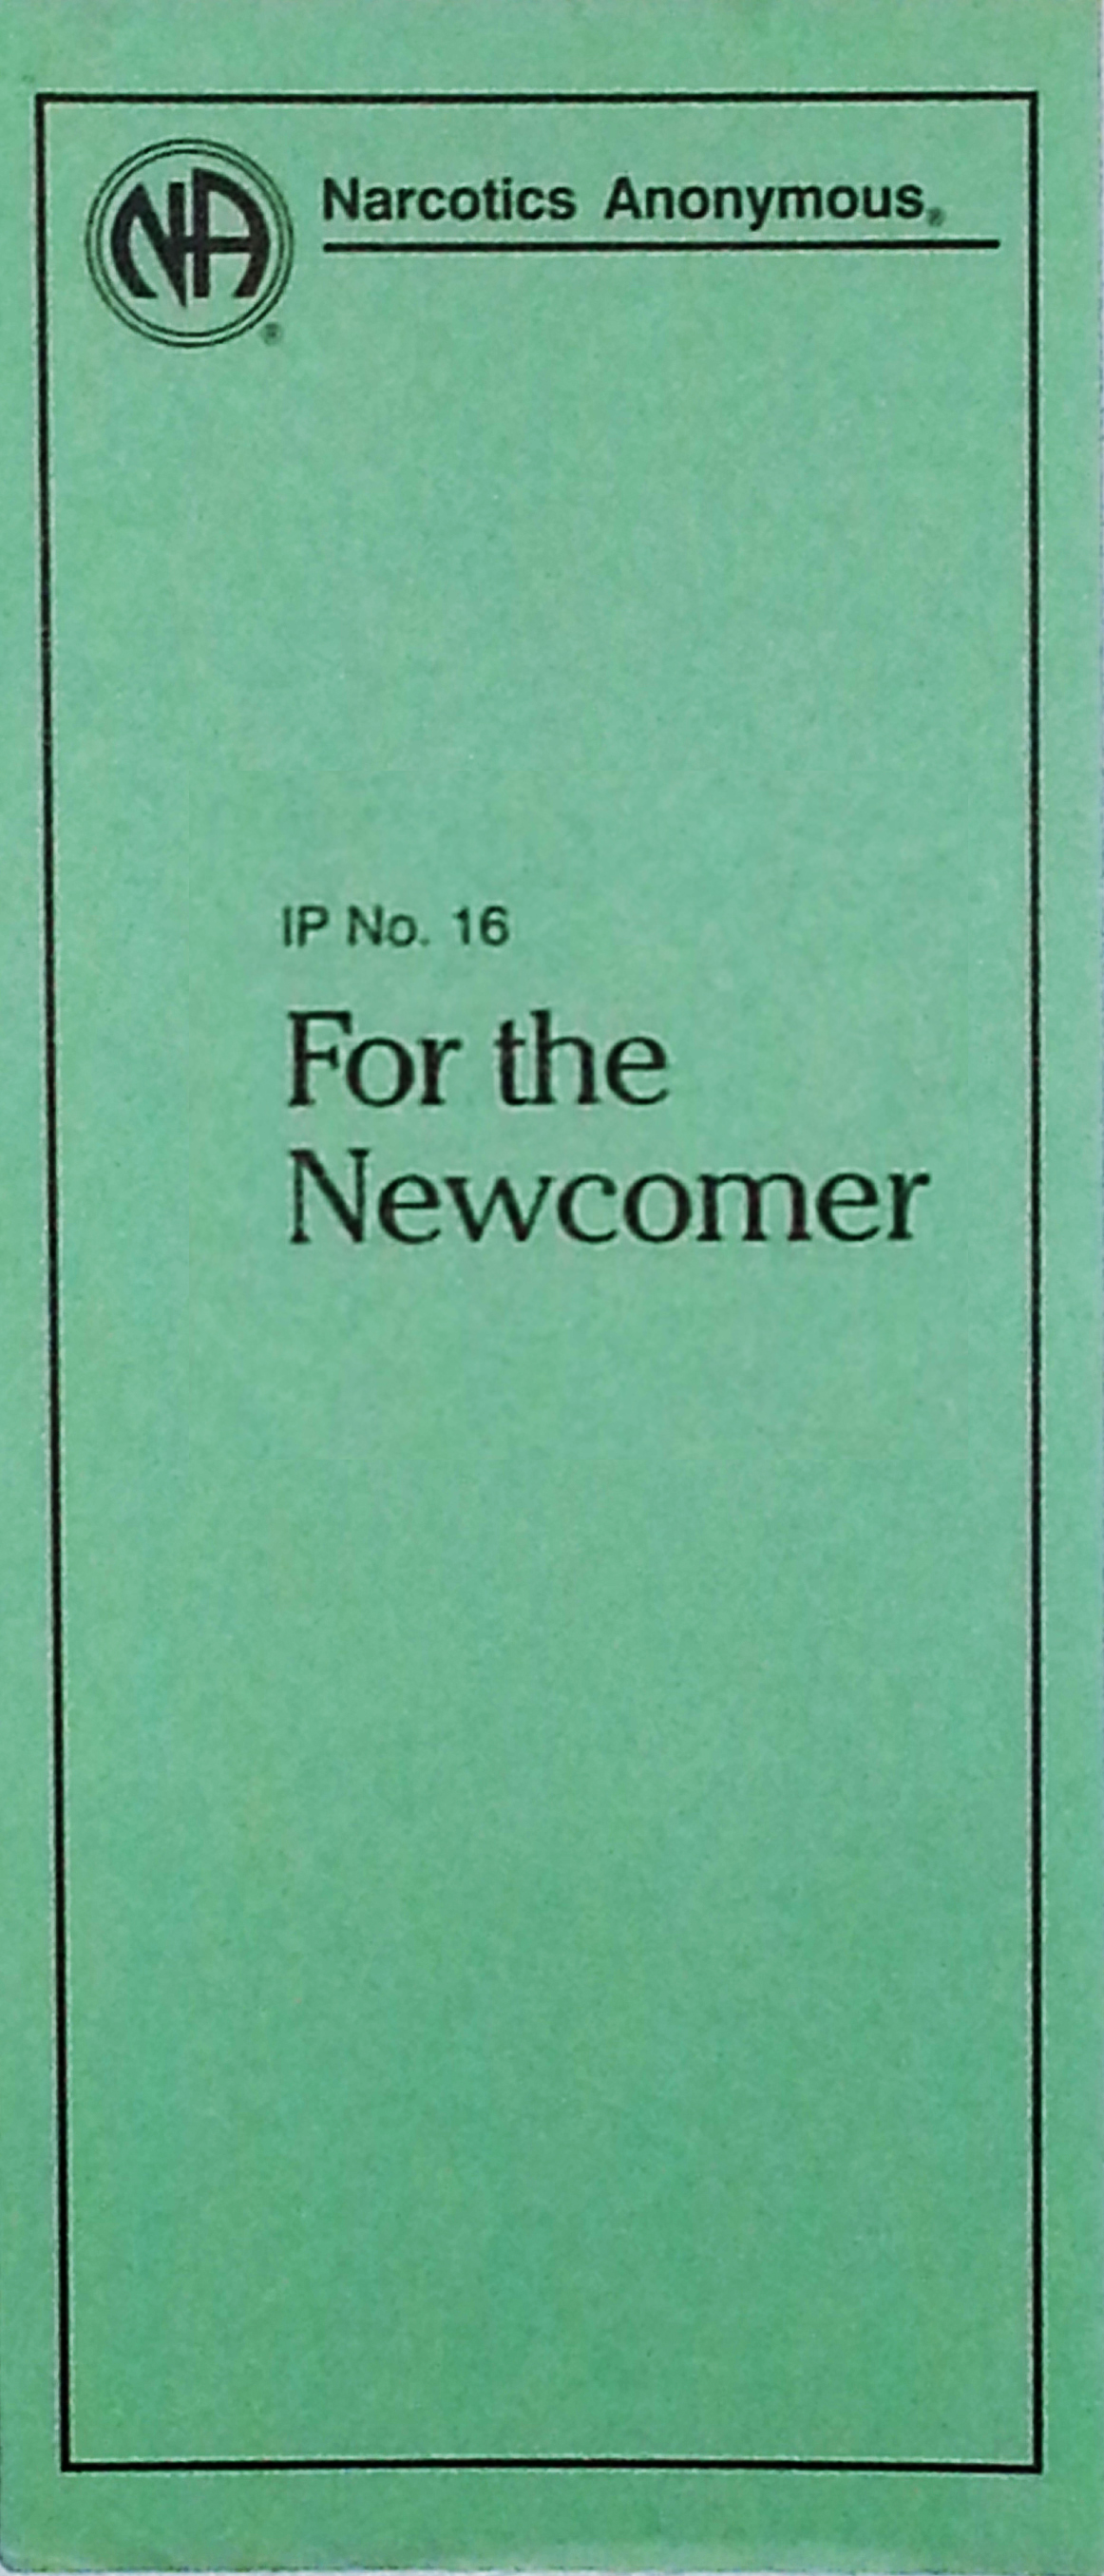 Narcotics Anonymous Information Pamphlet, IP#16 For the         Newcomer